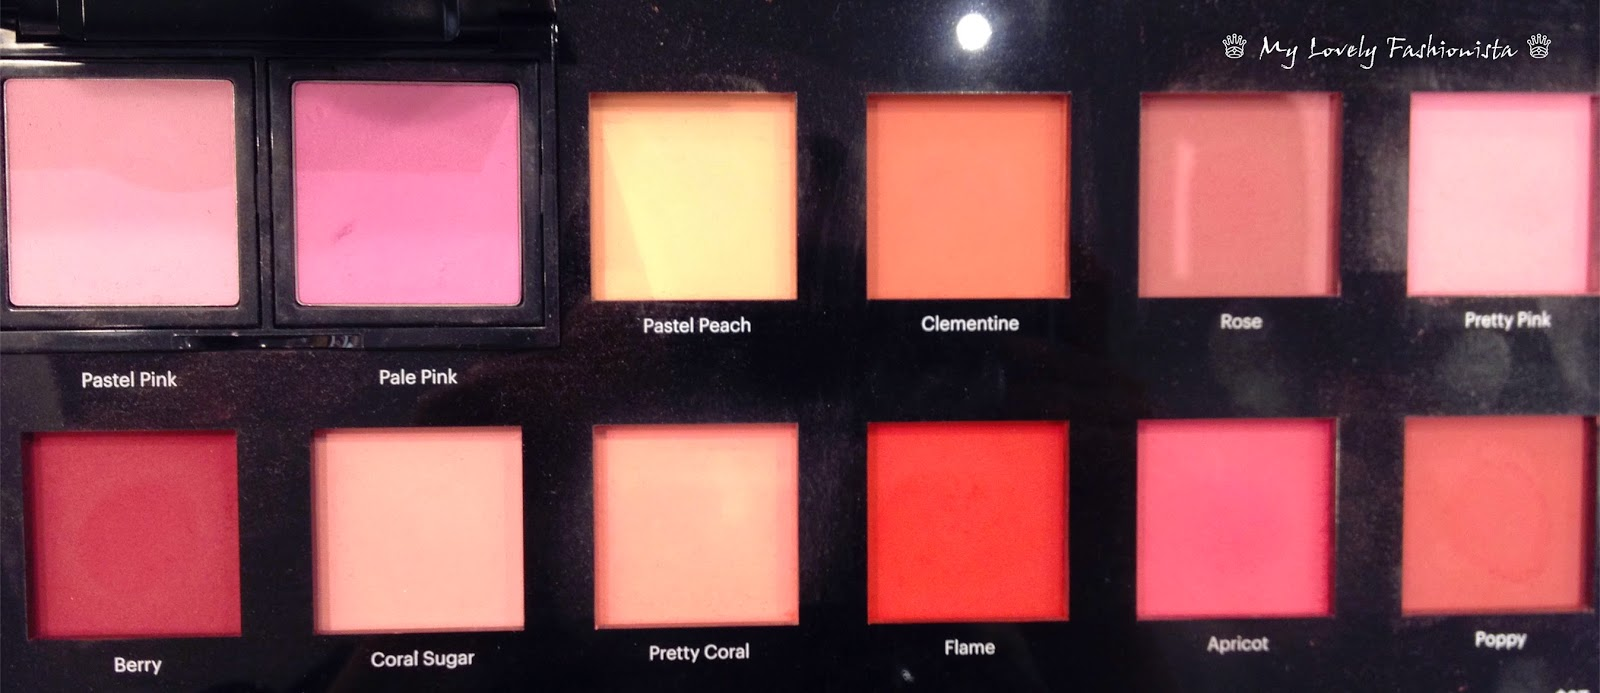 Bobbi Brown Blushes Pastel Pink Pale Pink Pastel Peach Clementine Rose Pretty Pink Berry